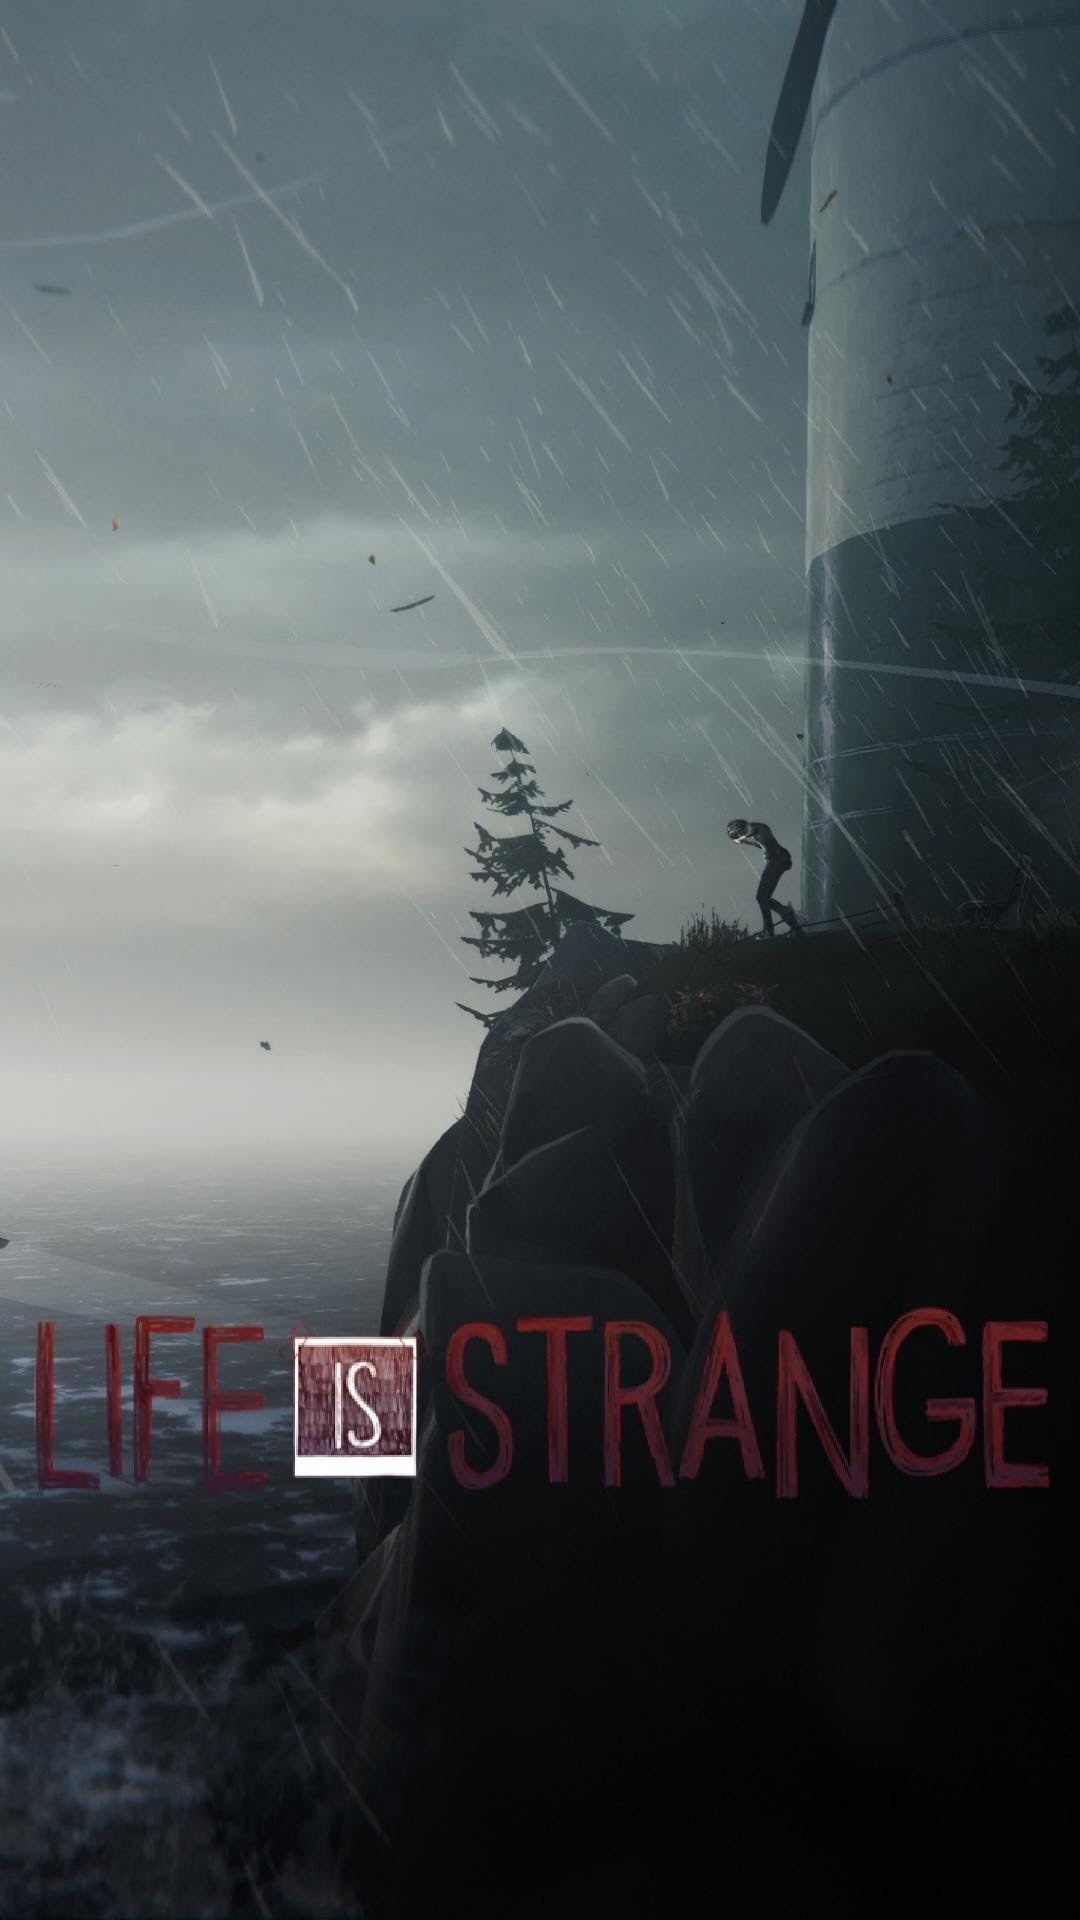 Life Is Strange Phone Wallpaper 83 Images